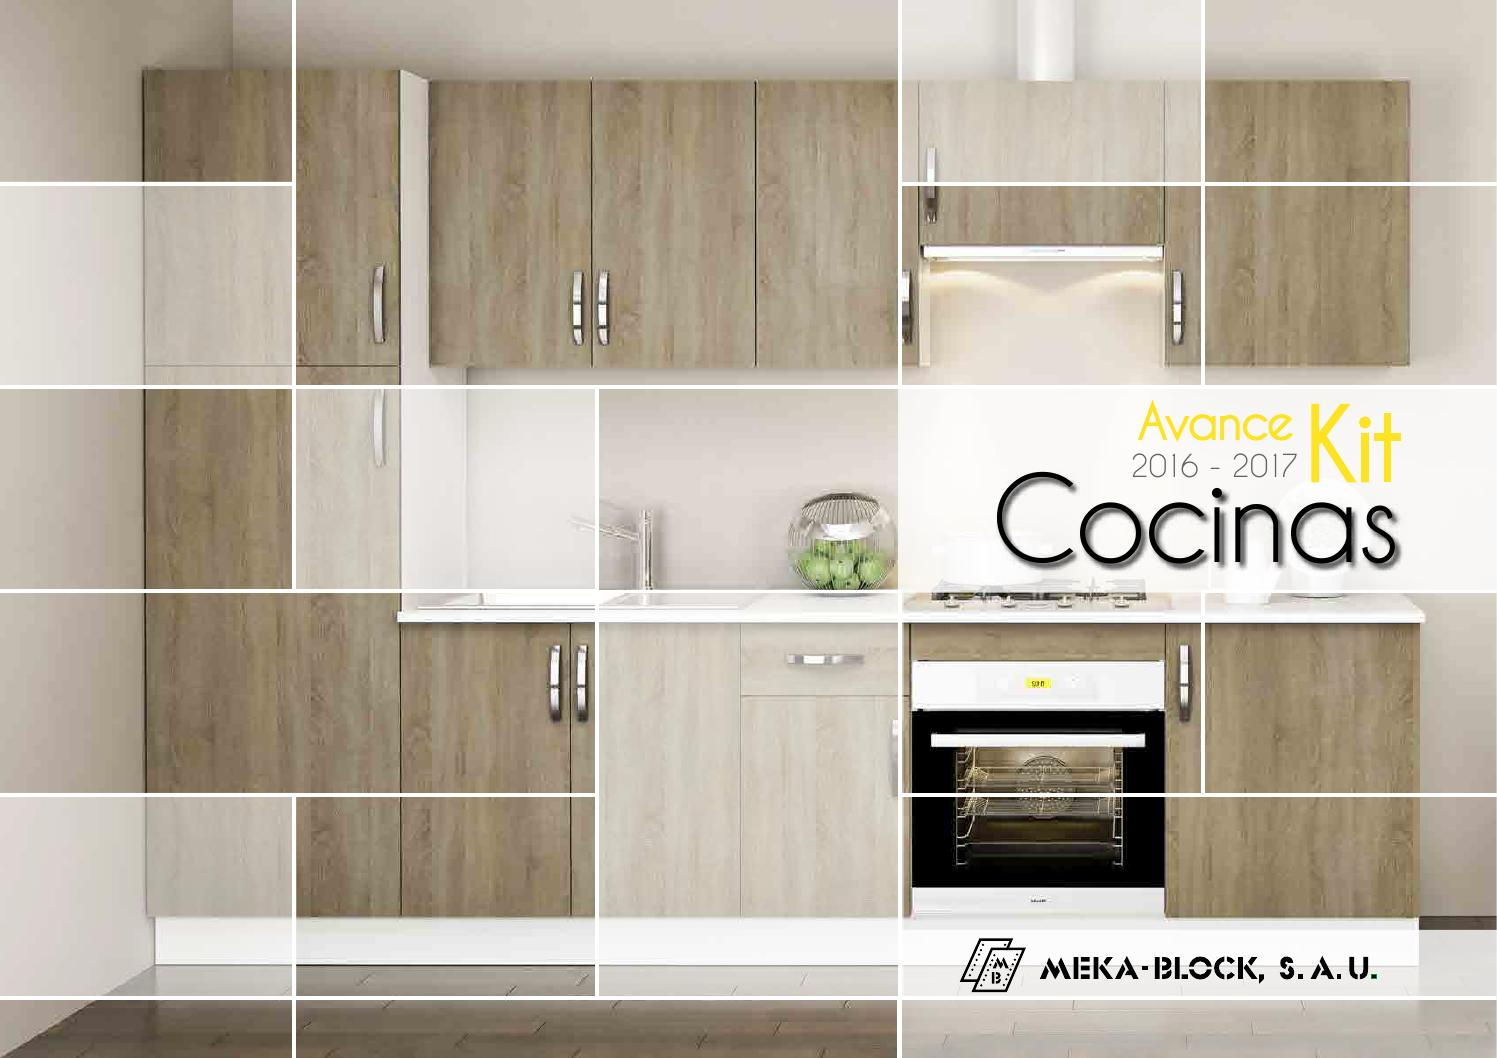 Avance catalogo cocinas 2016 2017 de meka block by meka for Cocinas santos catalogo 2016